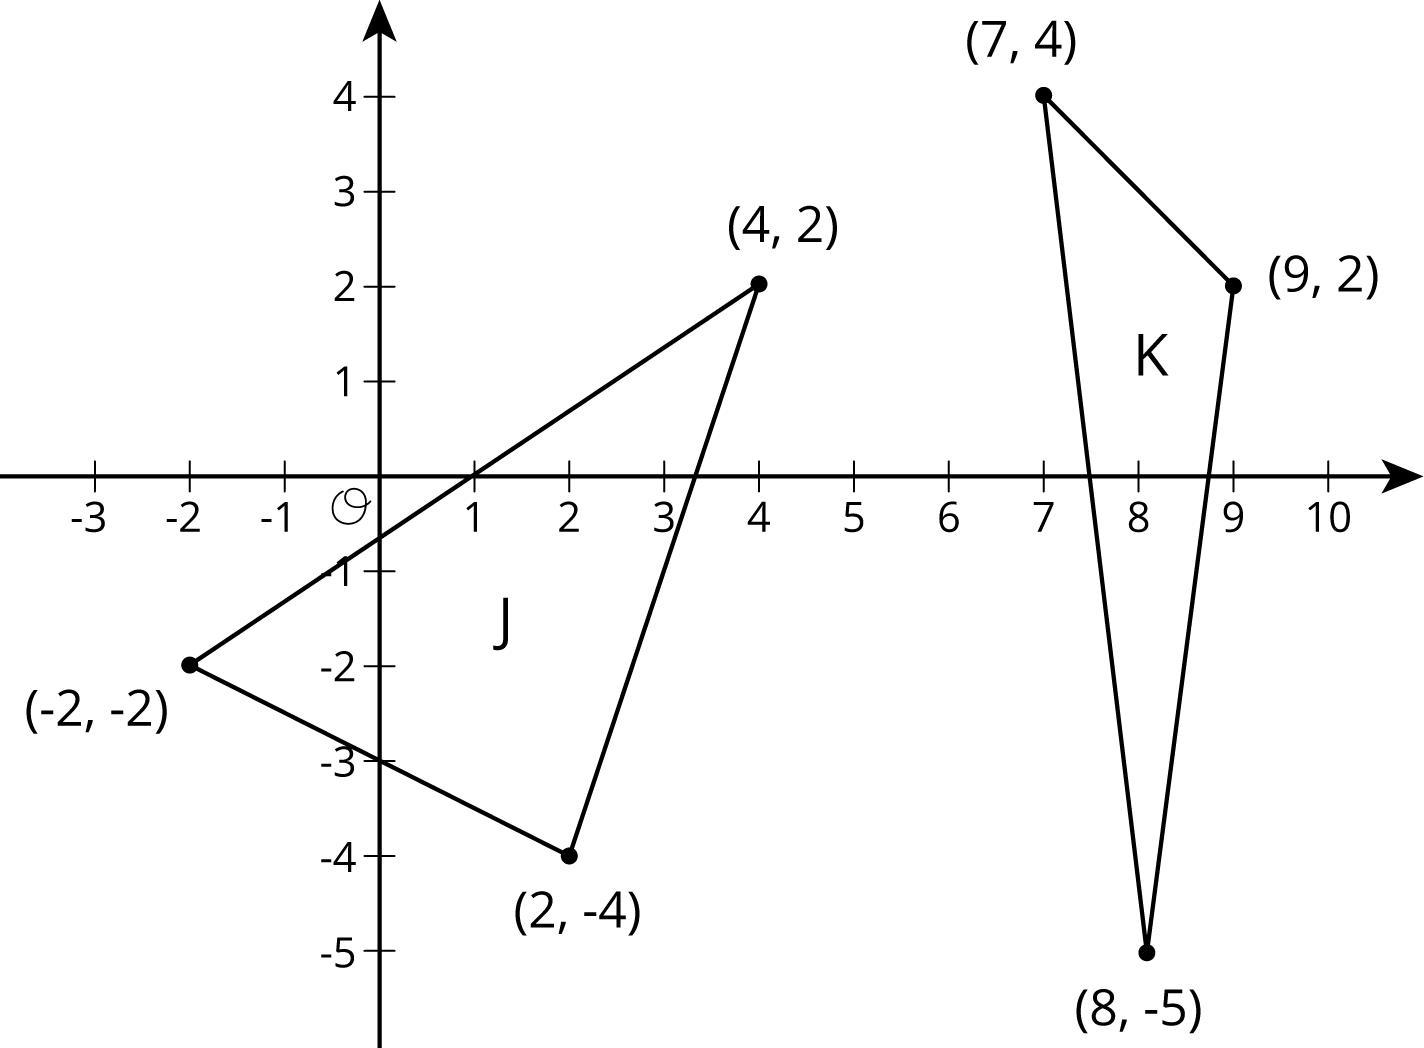 """Two triangles labeled """"J"""" and """"K"""" are graphed in the coordinate plane with the origin labeled """"O"""". The numbers negative 3 through 10 are indicated on the horizontal axis and the numbers negative 5 through 4 are indicated on the vertical axis. The triangles have the following vertices:  Triangle """"J"""": Negative 2 comma negative 2. 2 comma negative 4. 4 comma 2.  Triangle """"K"""": 7 comma 4. 9 comma 2. 8 comma negative 5."""